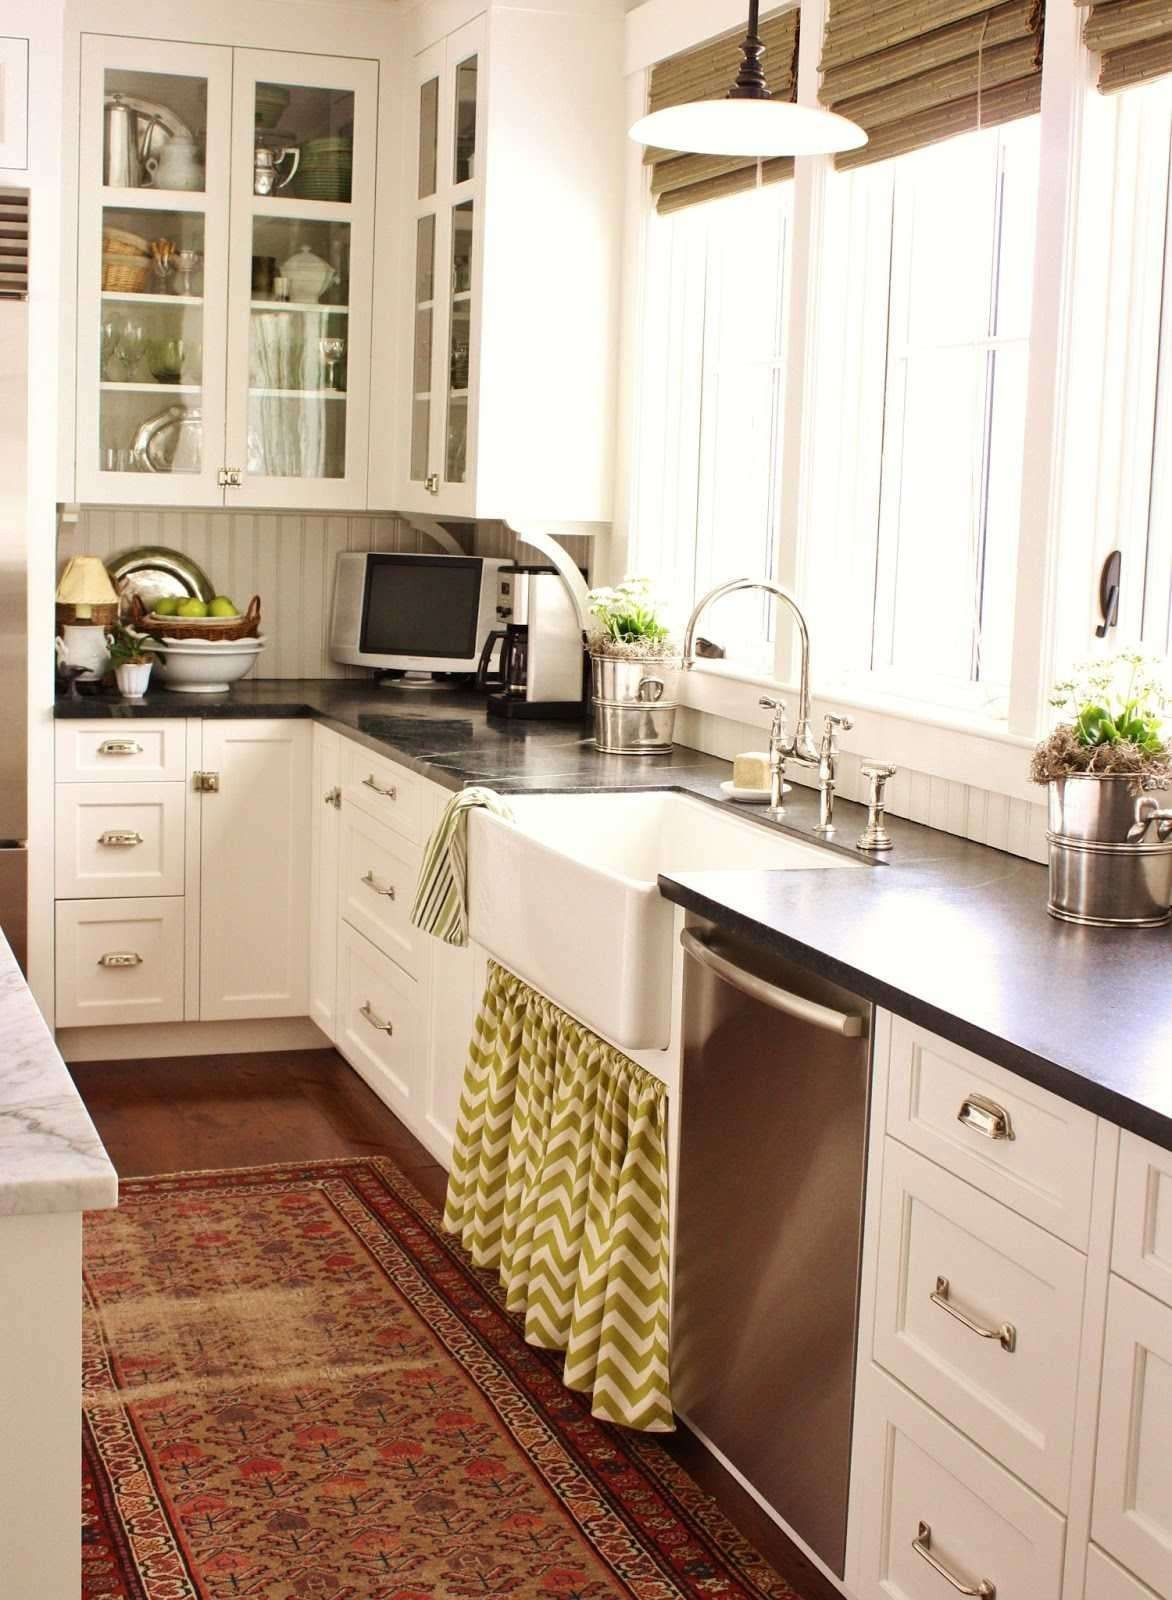 black hardwood floors in kitchen of best selection of area rugs beautiful 33 greatest black round area within best selection of area rugs lovely area rugs for hardwood floors best jute rugs 0d archives